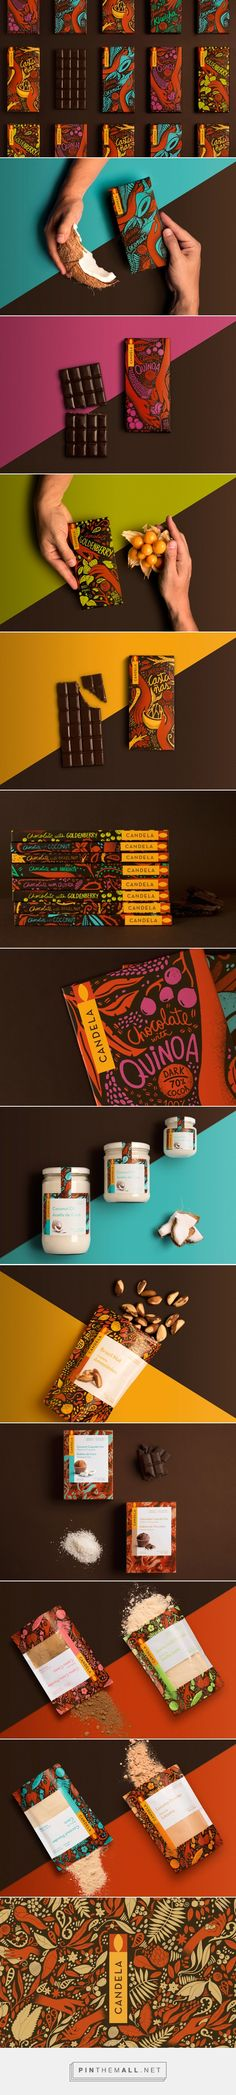 Candela Candela chocolate packaging design by Infinito Consultores – www. Cool Packaging, Food Packaging Design, Brand Packaging, Branding Design, Packaging Ideas, Coffee Packaging, Bottle Packaging, Web Design, Label Design